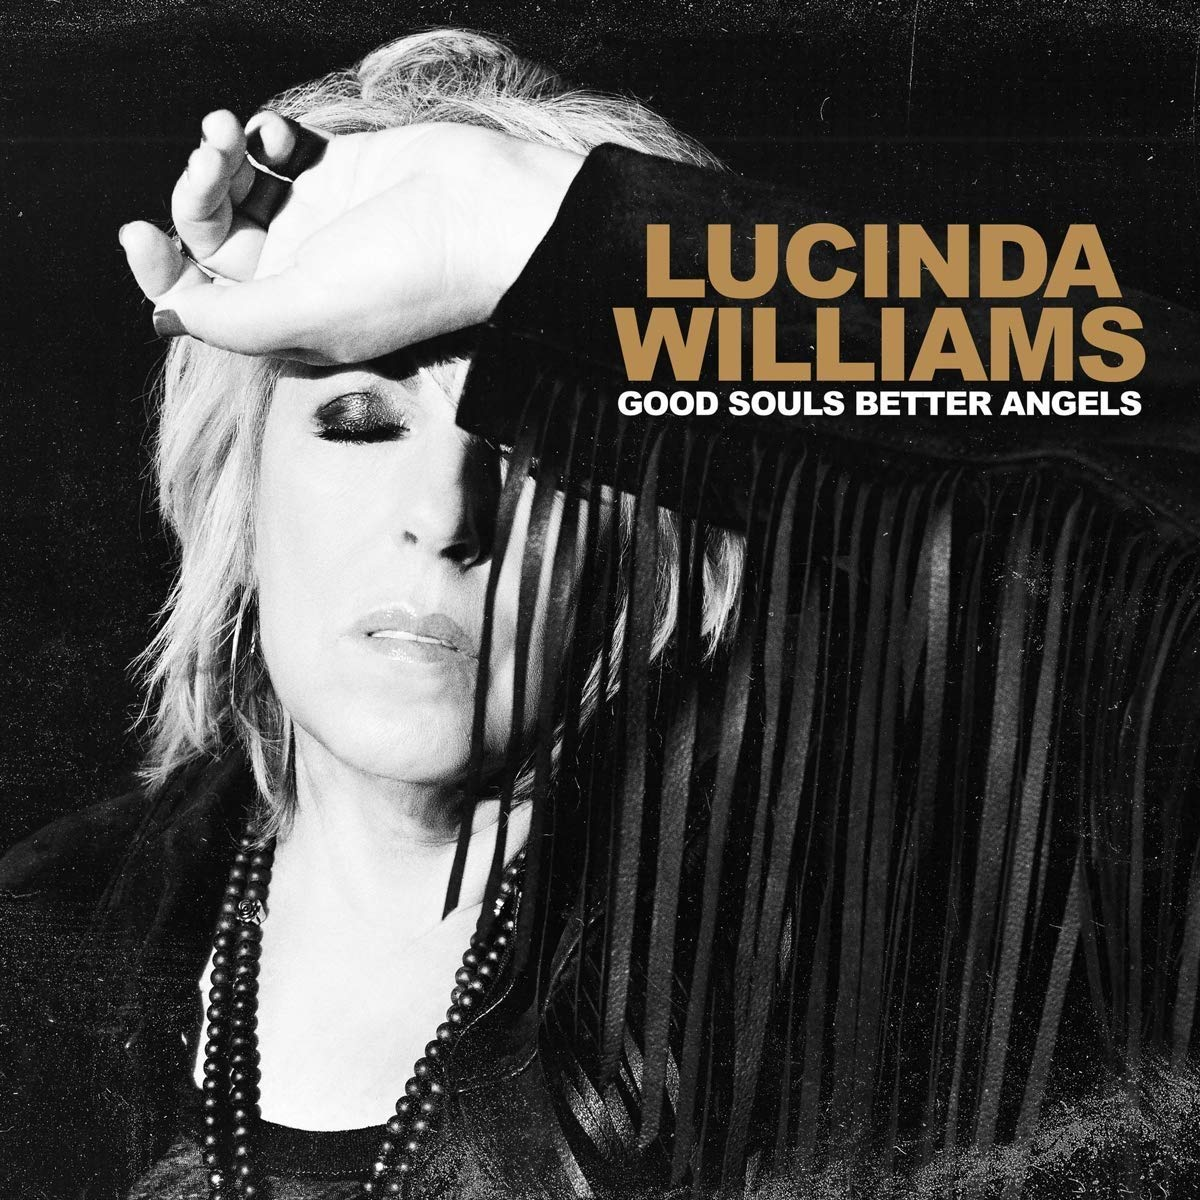 Buy Lucinda Williams: Good Souls Better Angels New or Used via Amazon